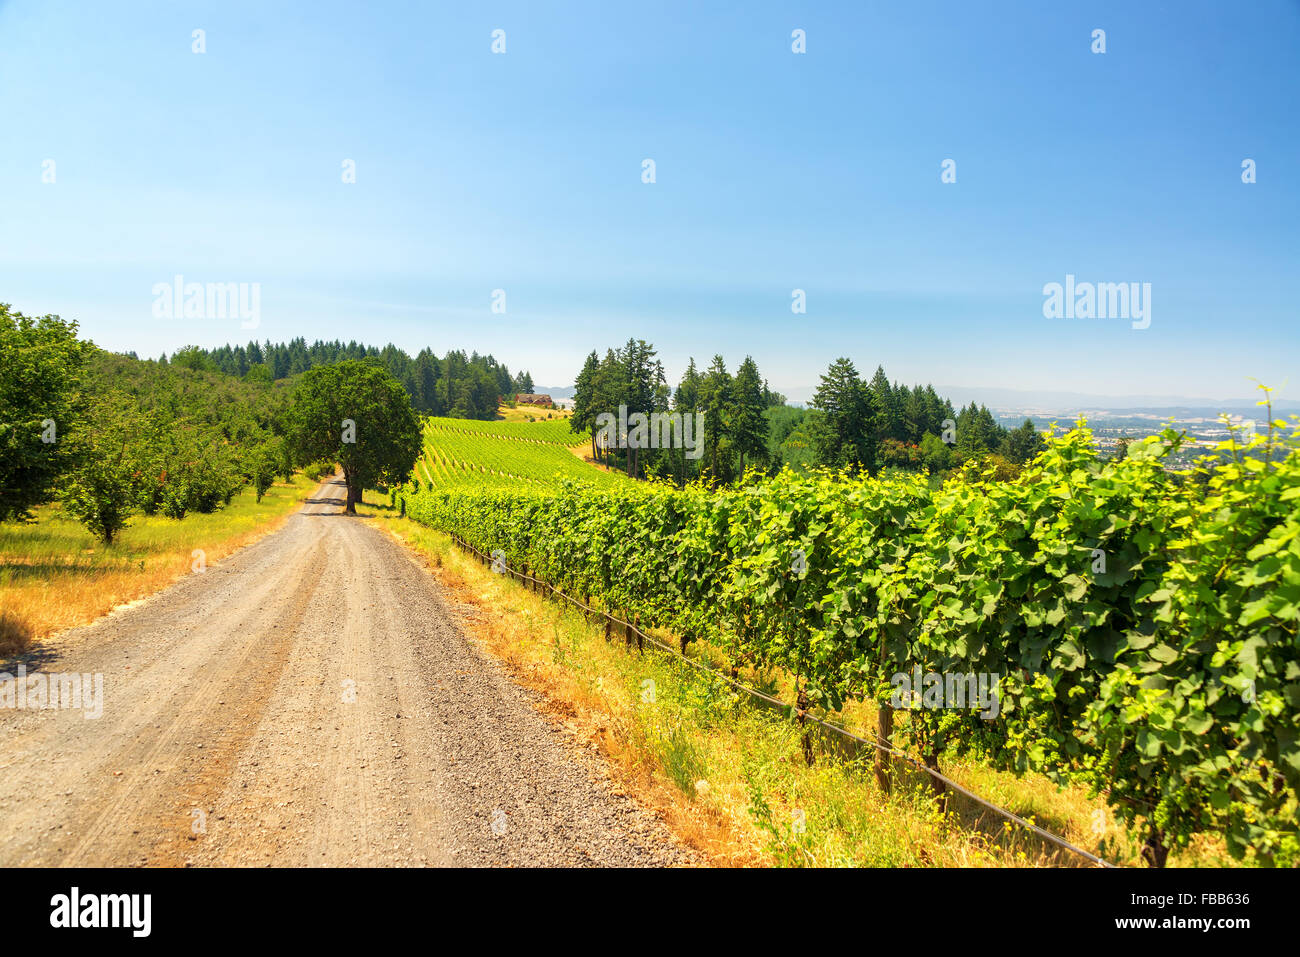 Gravel road passing vineyards near Dundee, Oregon - Stock Image